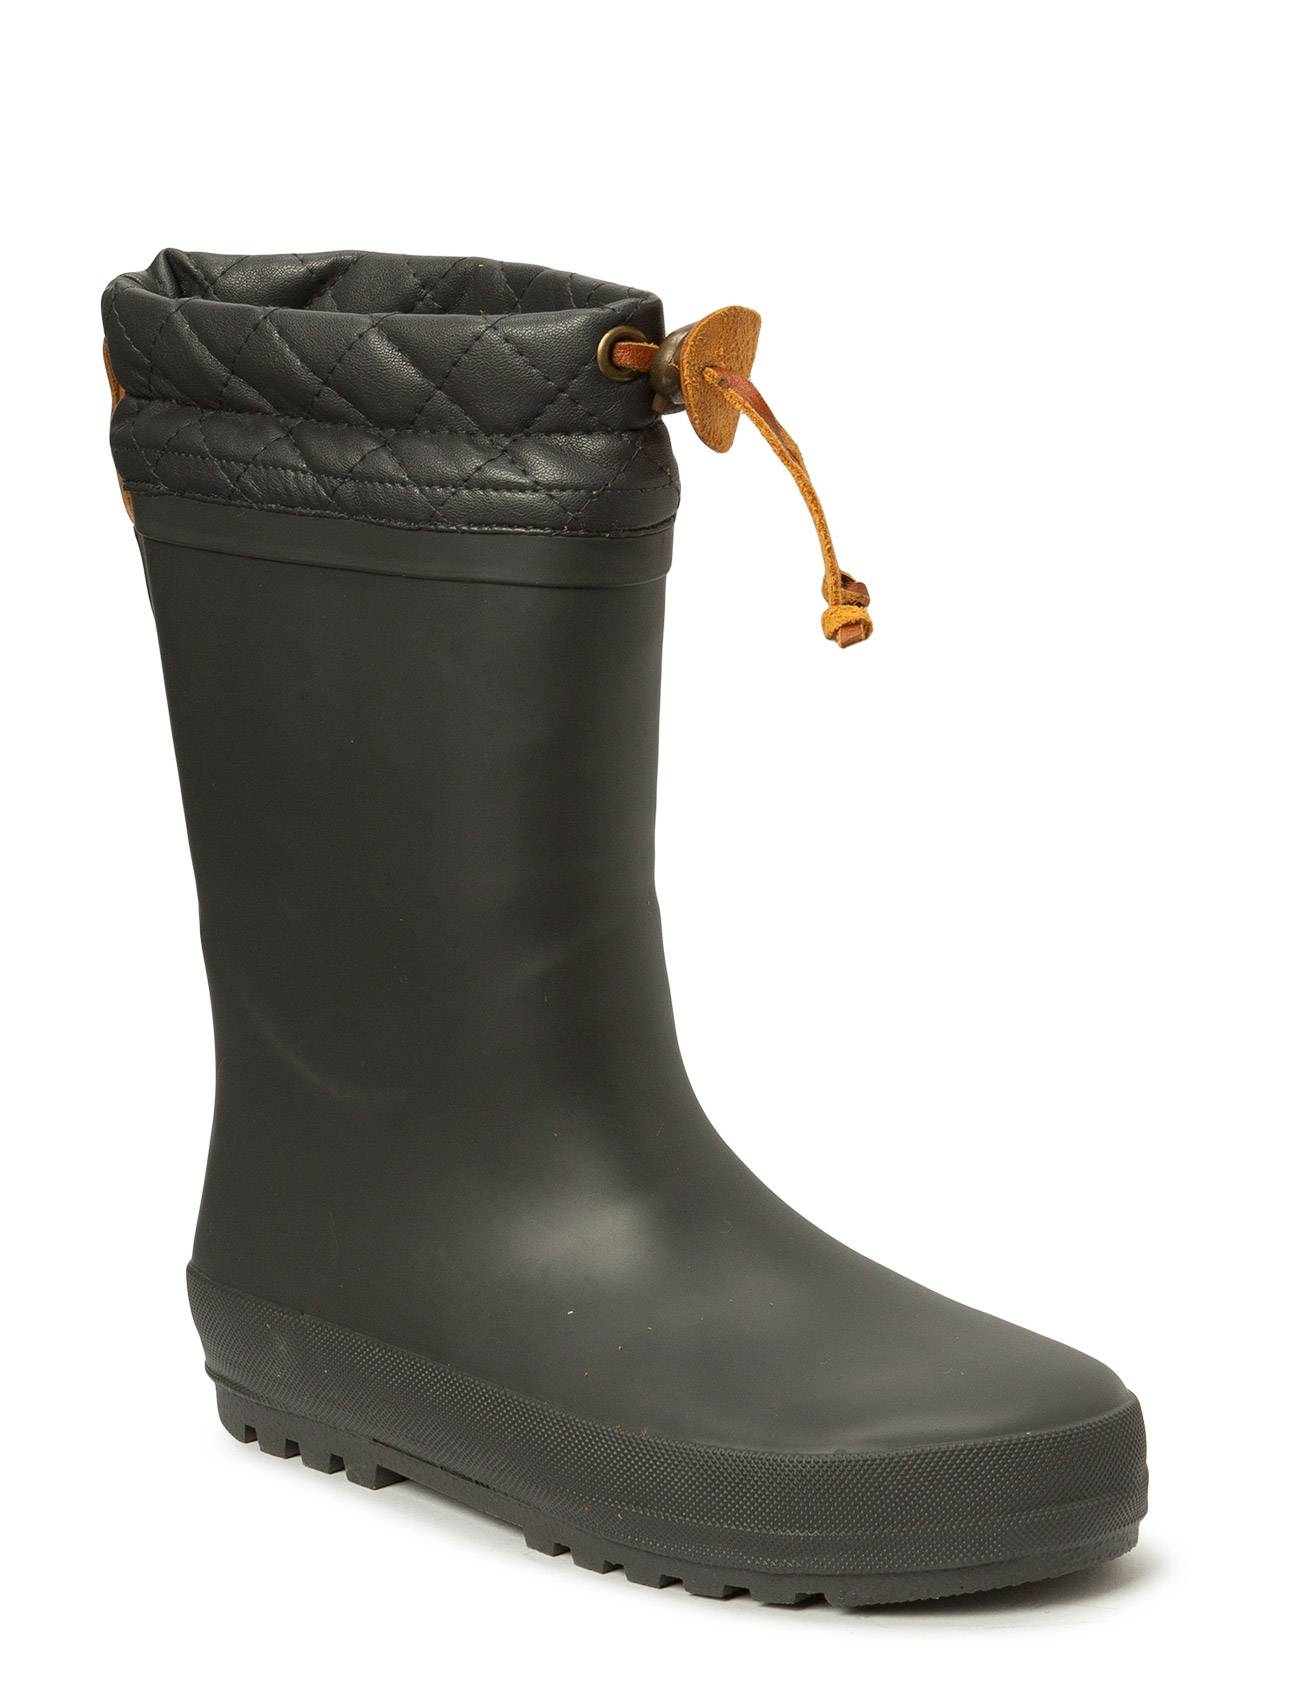 Move by Melton Winter Wellie